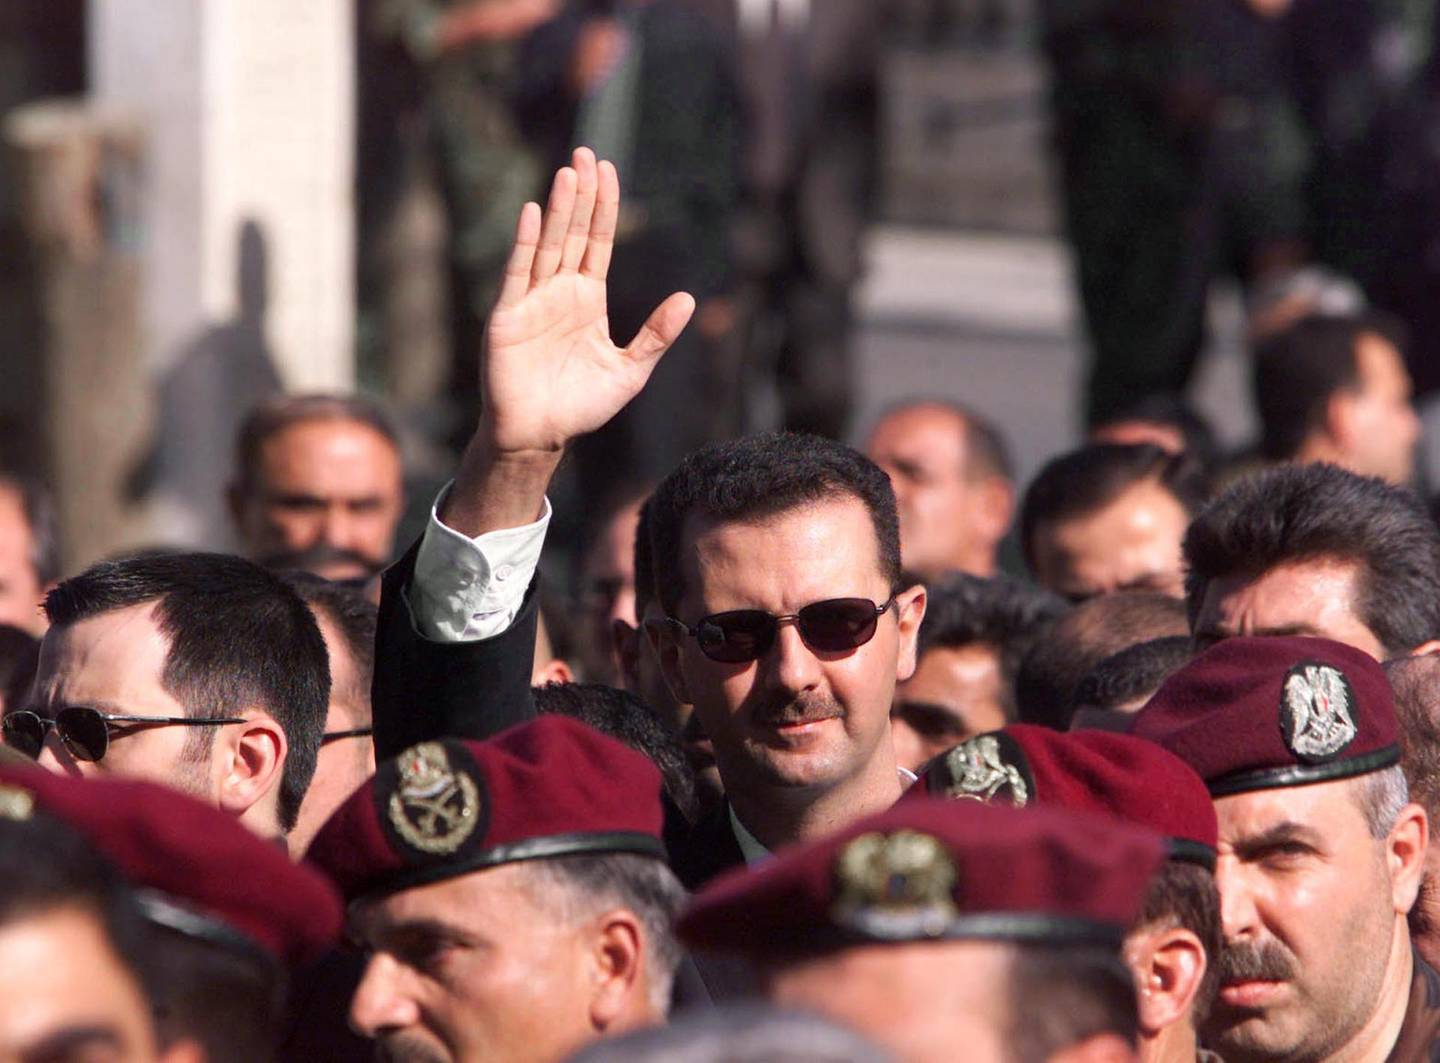 Syrian heir apparent Bashar al-Assad waves as he follows the funeral procession of his father President Hafez al-Assad in Damascus 13 June 2000. Assad, who ruled his country with n iron fist for 30 years, died 10 June at the age of 69. (ELECTRONIC IMAGE) (Photo by RABIH MOGHRABI / AFP)